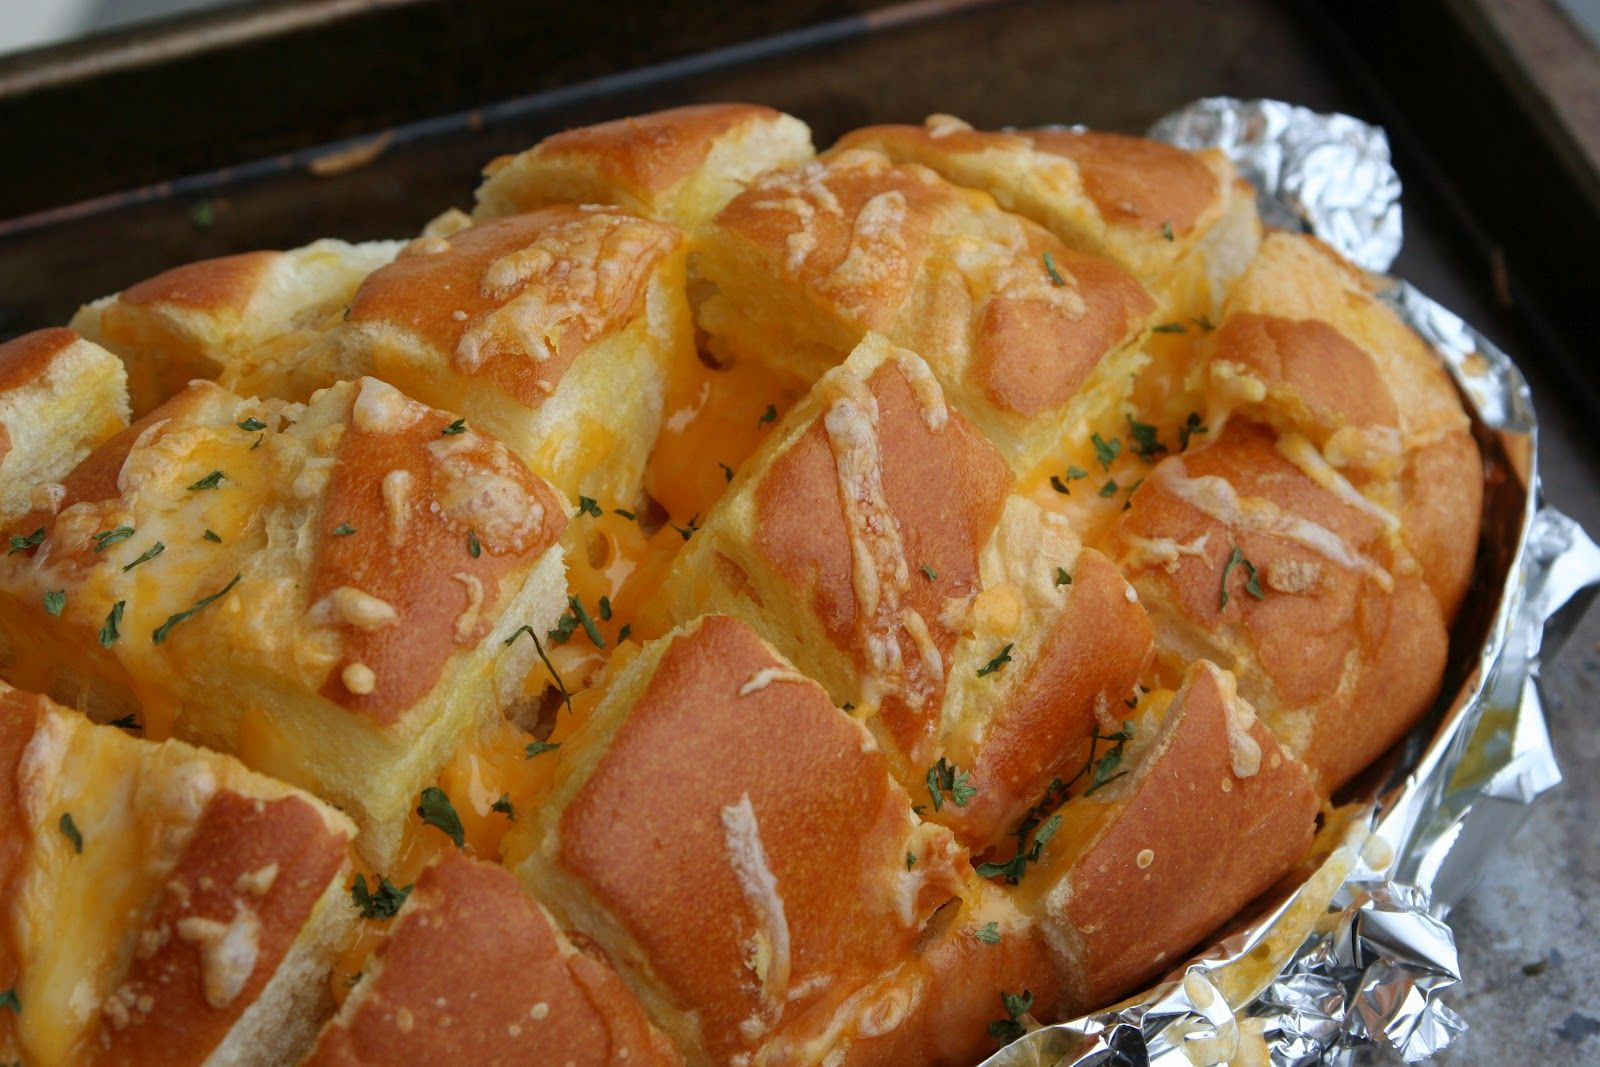 stuffed french bread garlic cheese | Click here for the printable recipe .